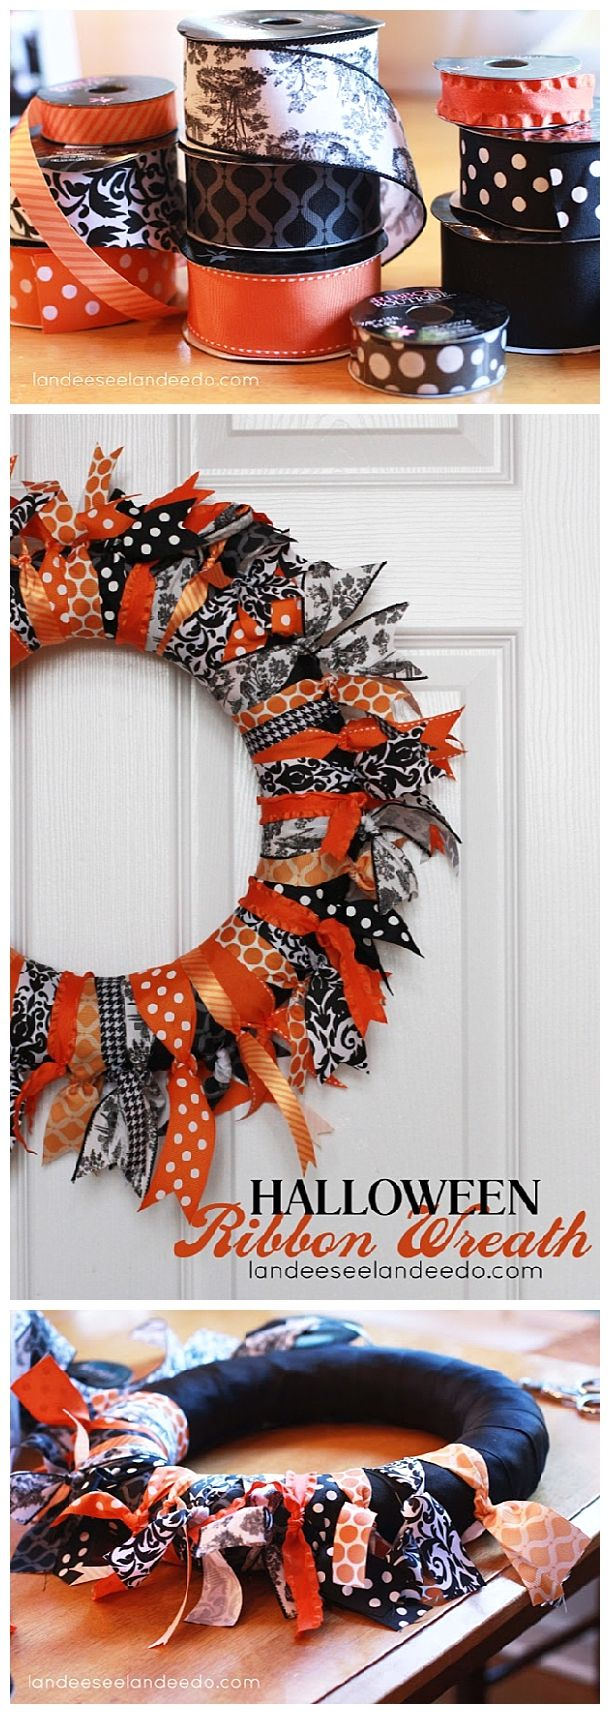 EASY and FUN DIY Halloween Ribbon Wreath Craft Project - Easy Step by Step  Holiday Home